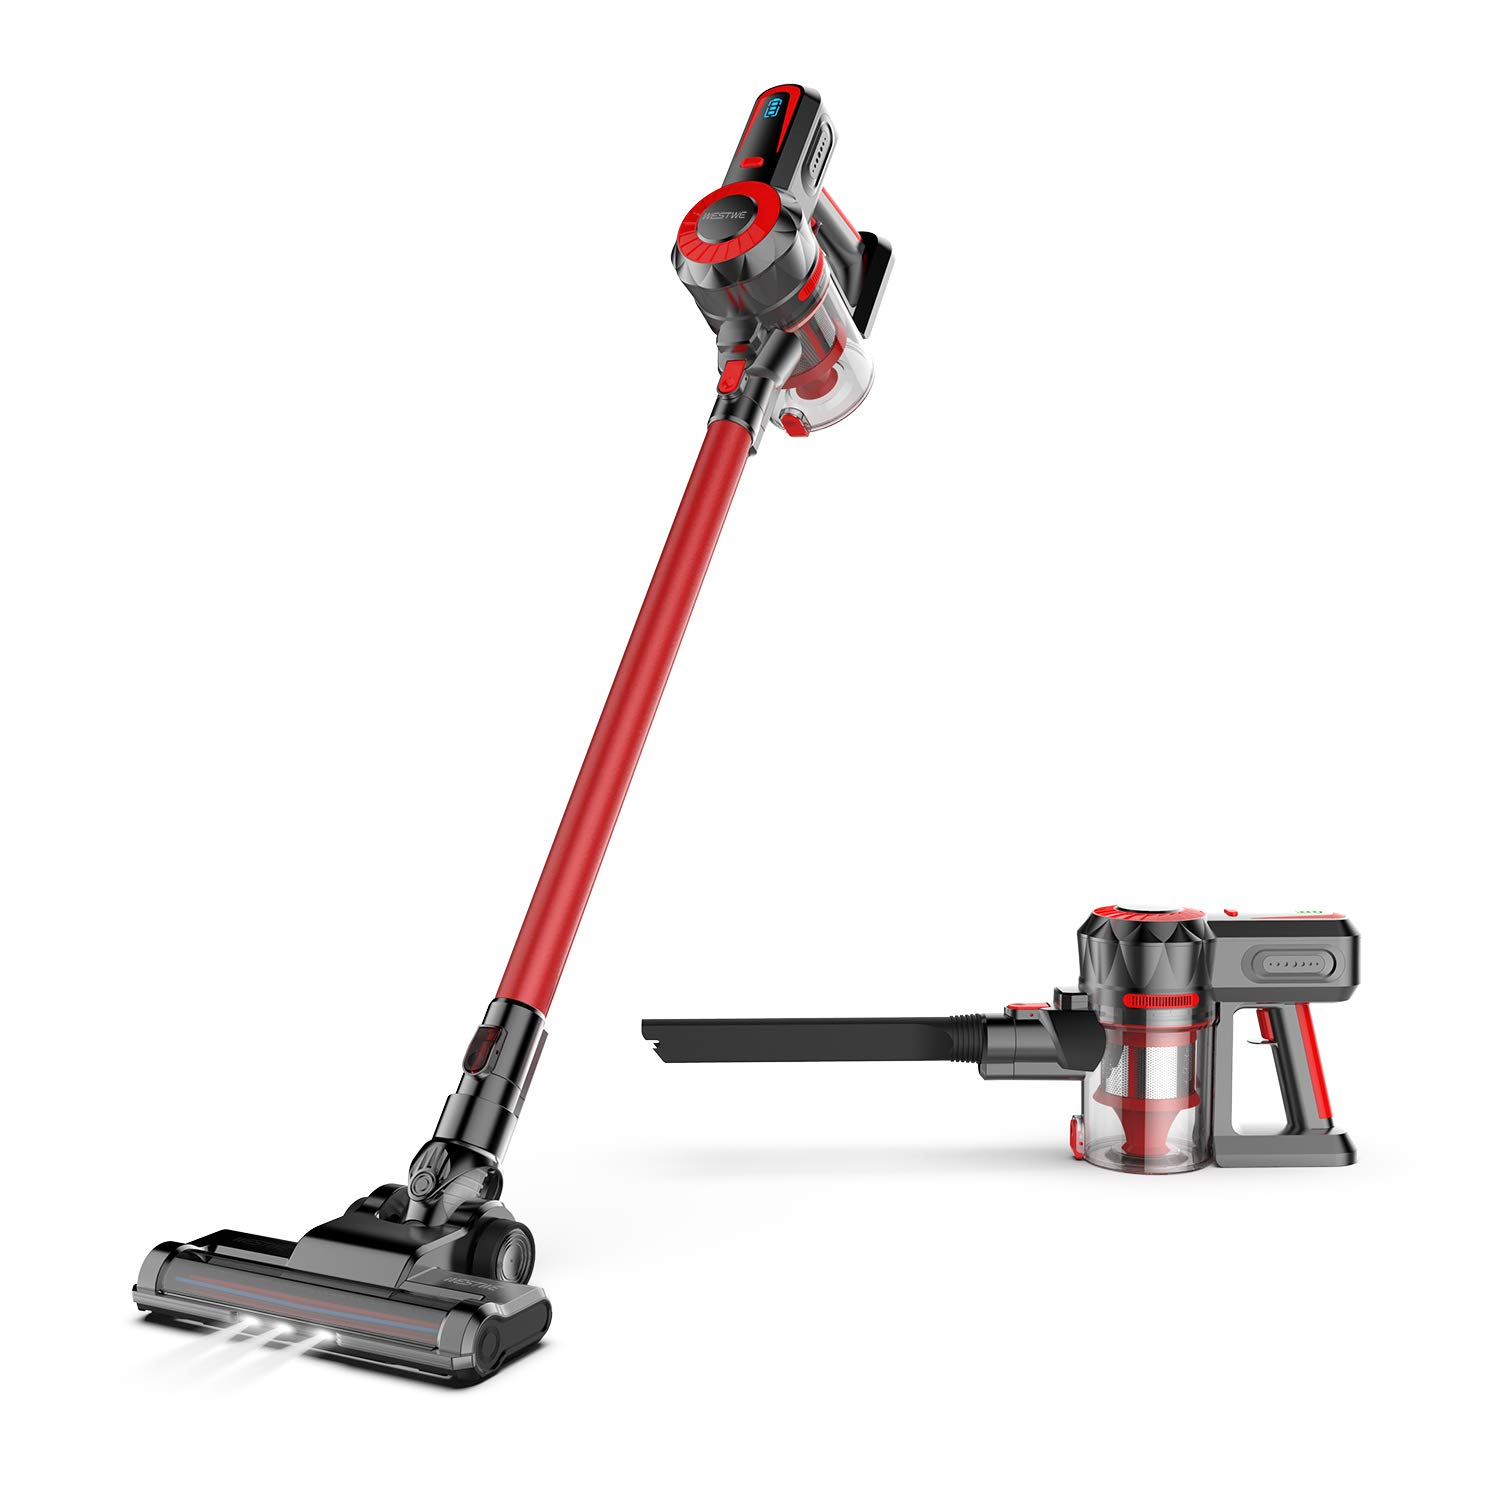 Cordless Vacuum, WESTWE Stick Vacuum Cleaner 12KPa Powerful 2 in 1 Stick Handheld Vacuum with Rechargeable Lithium Ion Battery for Floor Carpet Pet Hair, Red